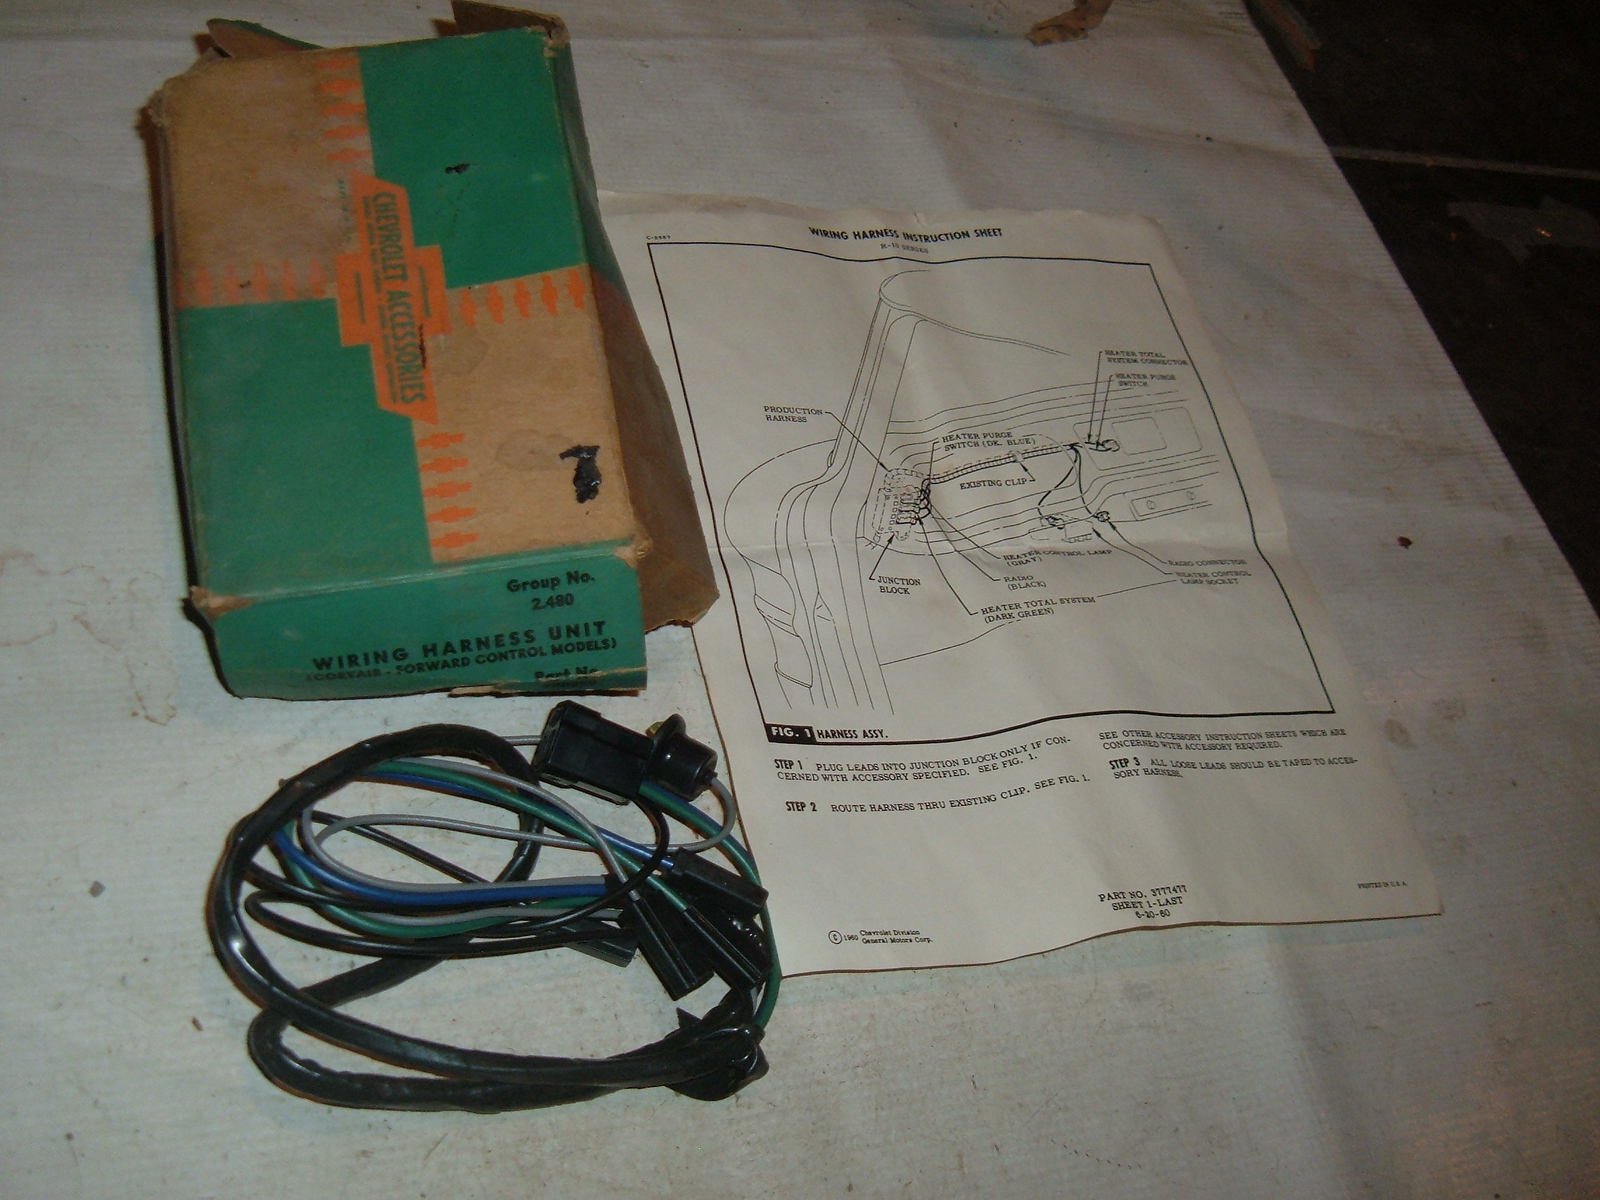 1961 62 63 64 65 Corvair Foreward Control Wiring Harness Nos Gm 988350 Installation Clips View Product1961 Z